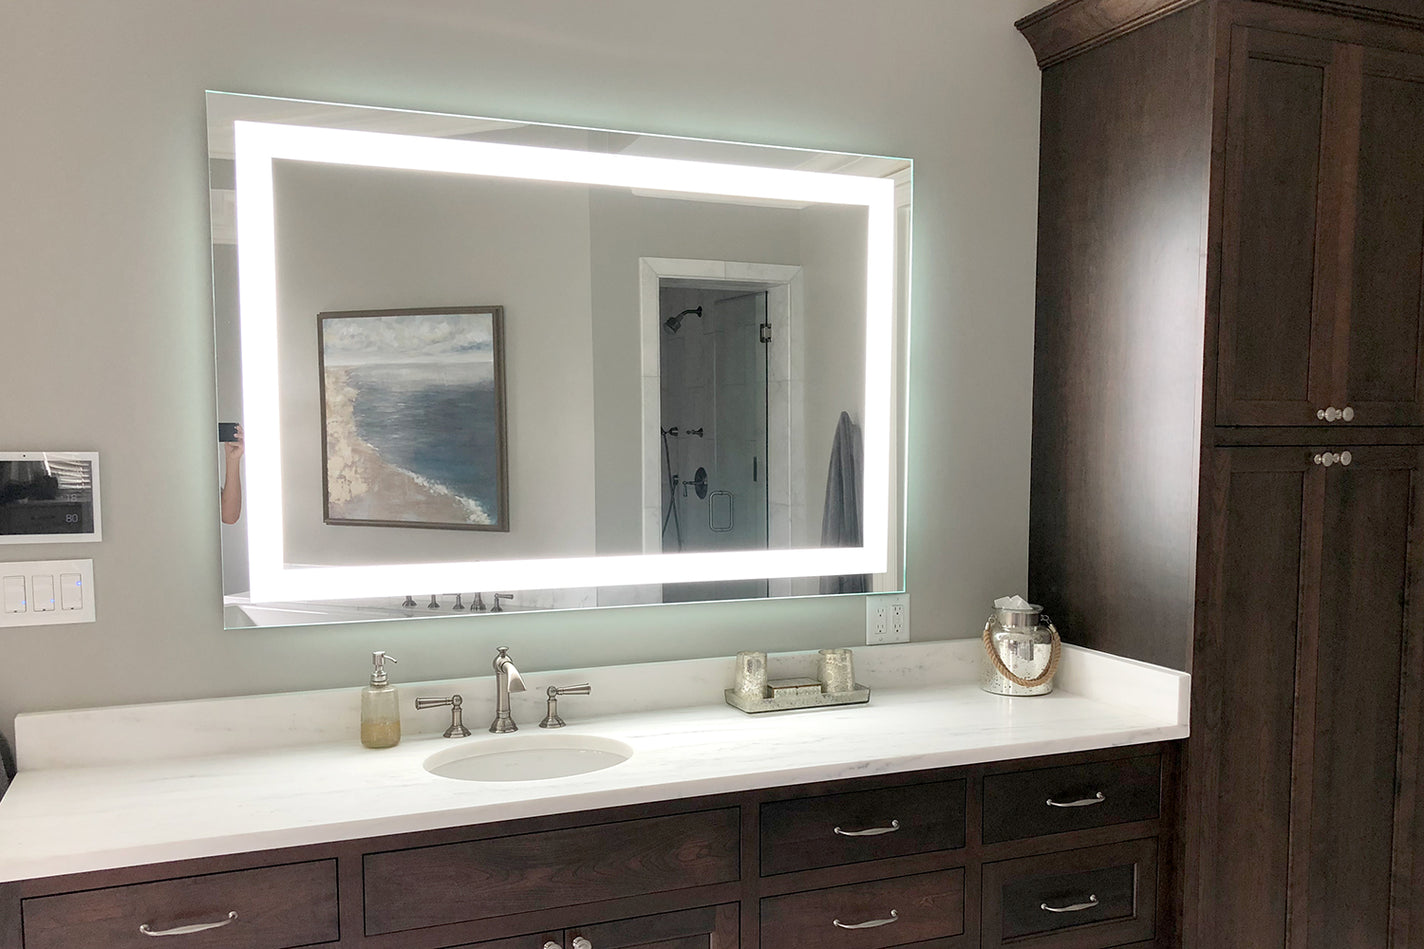 Front Lighted Led Bathroom Vanity Mirror 48 X 32 Rectangular Mirrors Marble